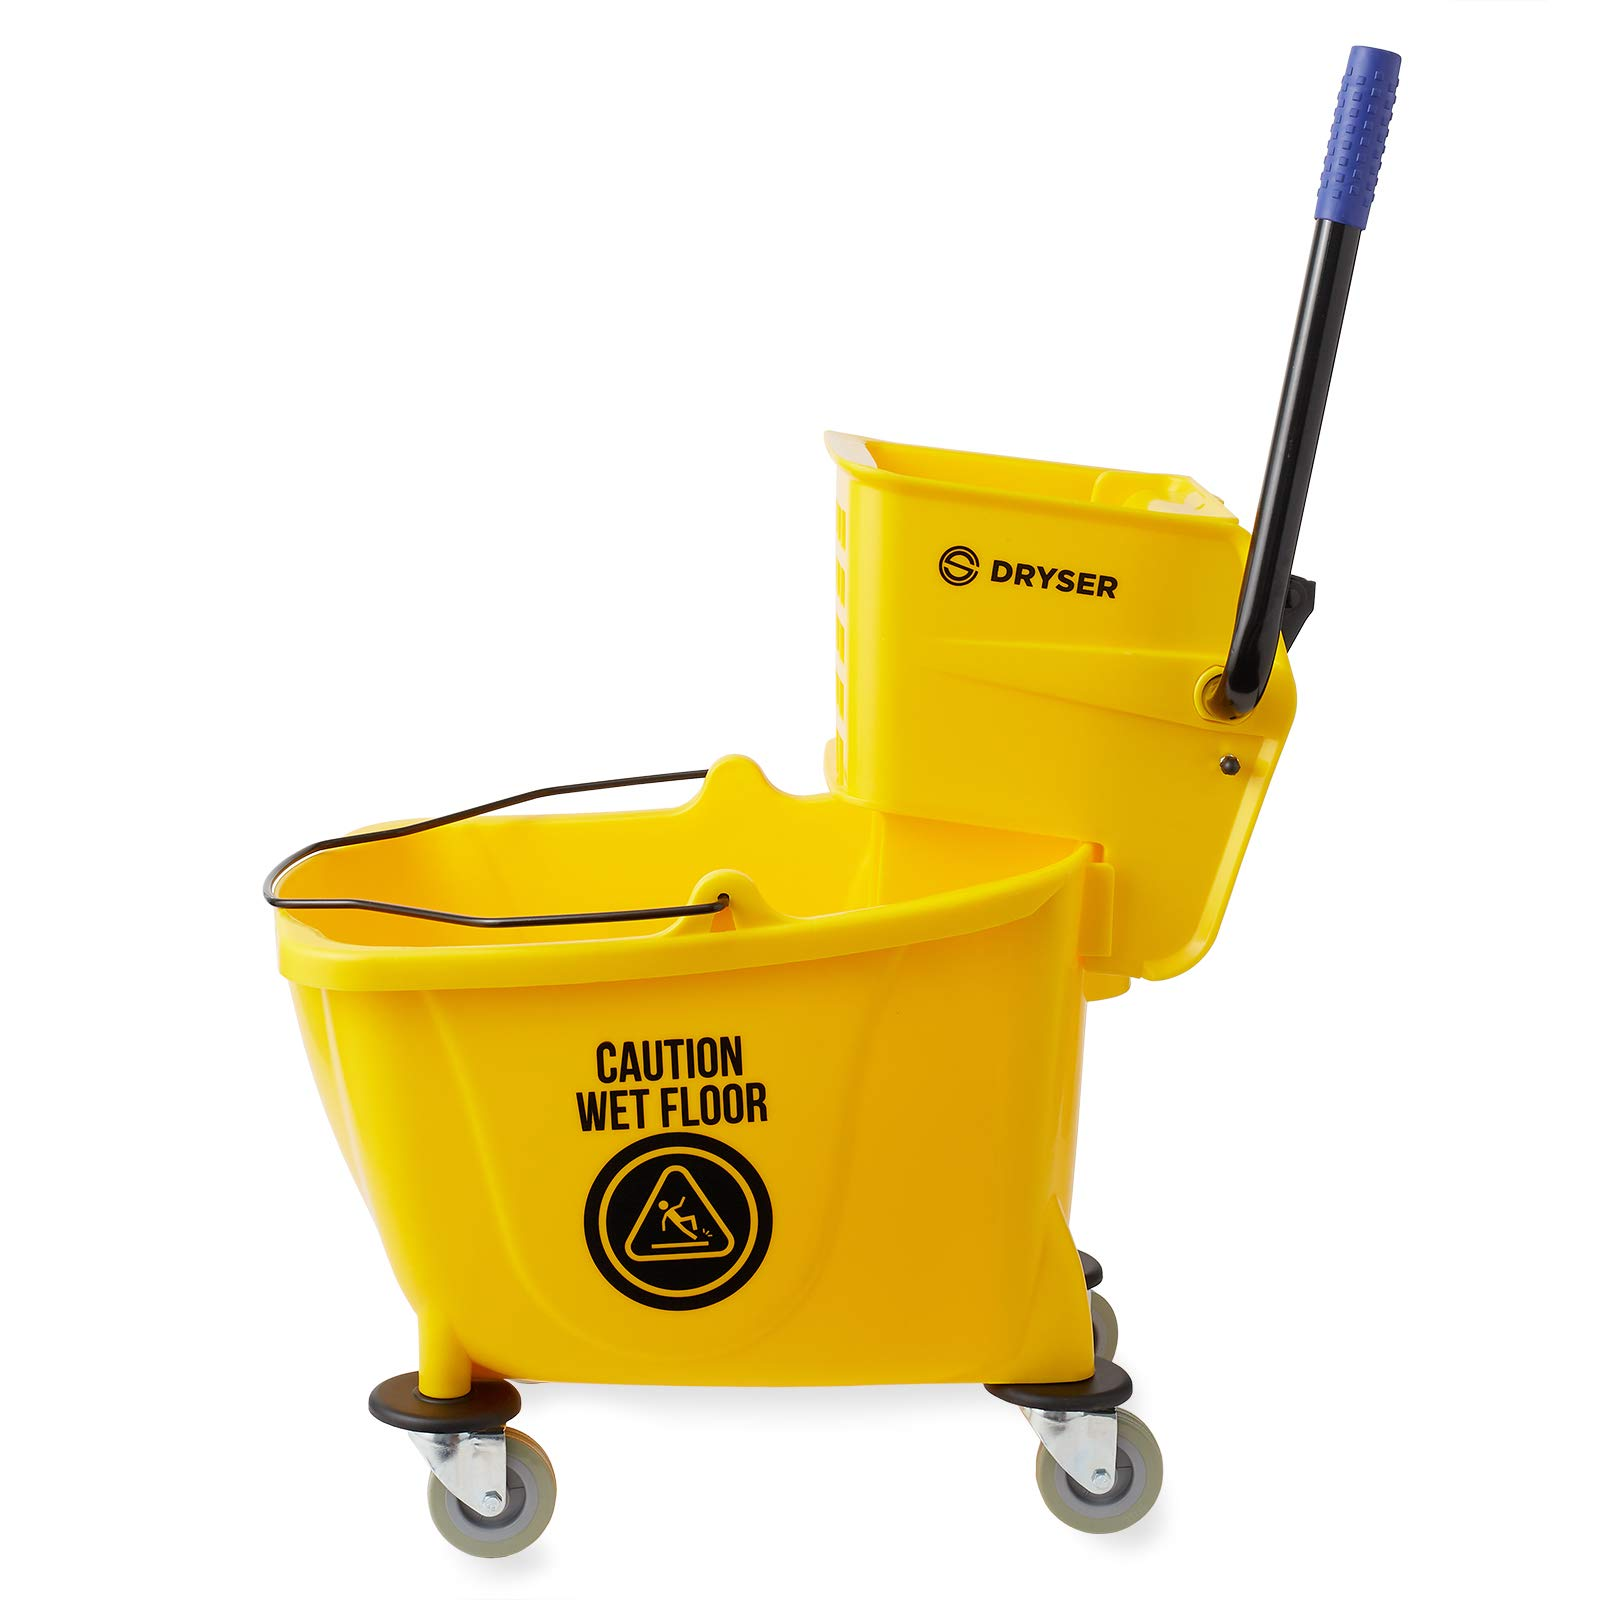 Dryser Commercial Mop Bucket with Side Press Wringer, 33 Quart, Yellow by Dryser (Image #2)